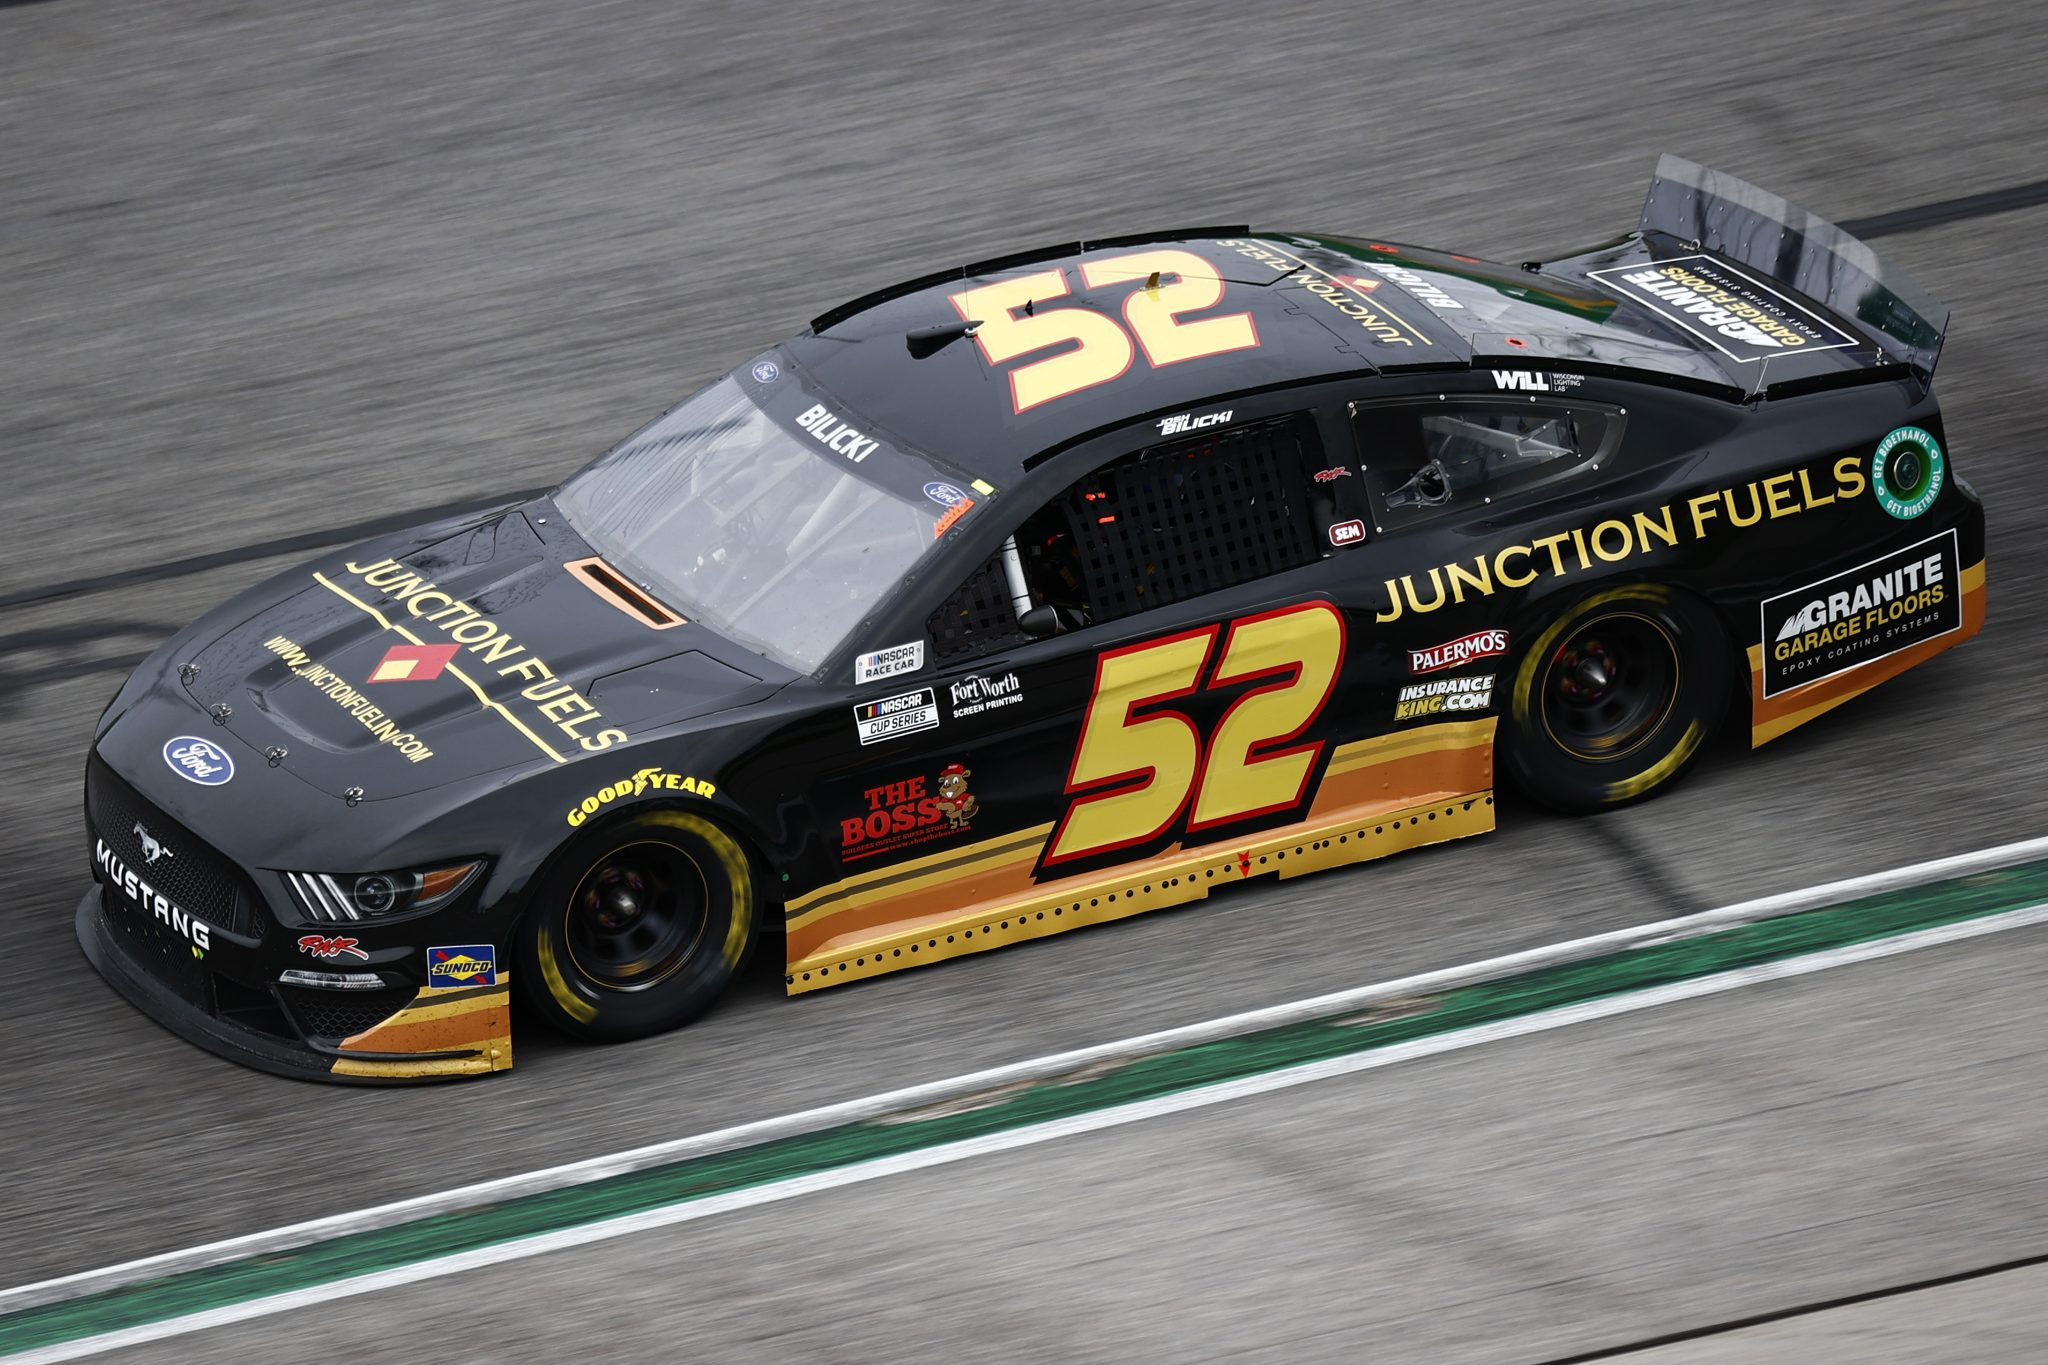 HAMPTON, GEORGIA - JULY 11: Josh Bilicki, driver of the #52 Junction Fuels Ford, drives during the NASCAR Cup Series Quaker State 400 presented by Walmart at Atlanta Motor Speedway on July 11, 2021 in Hampton, Georgia. (Photo by Jared C. Tilton/Getty Images)   Getty Images